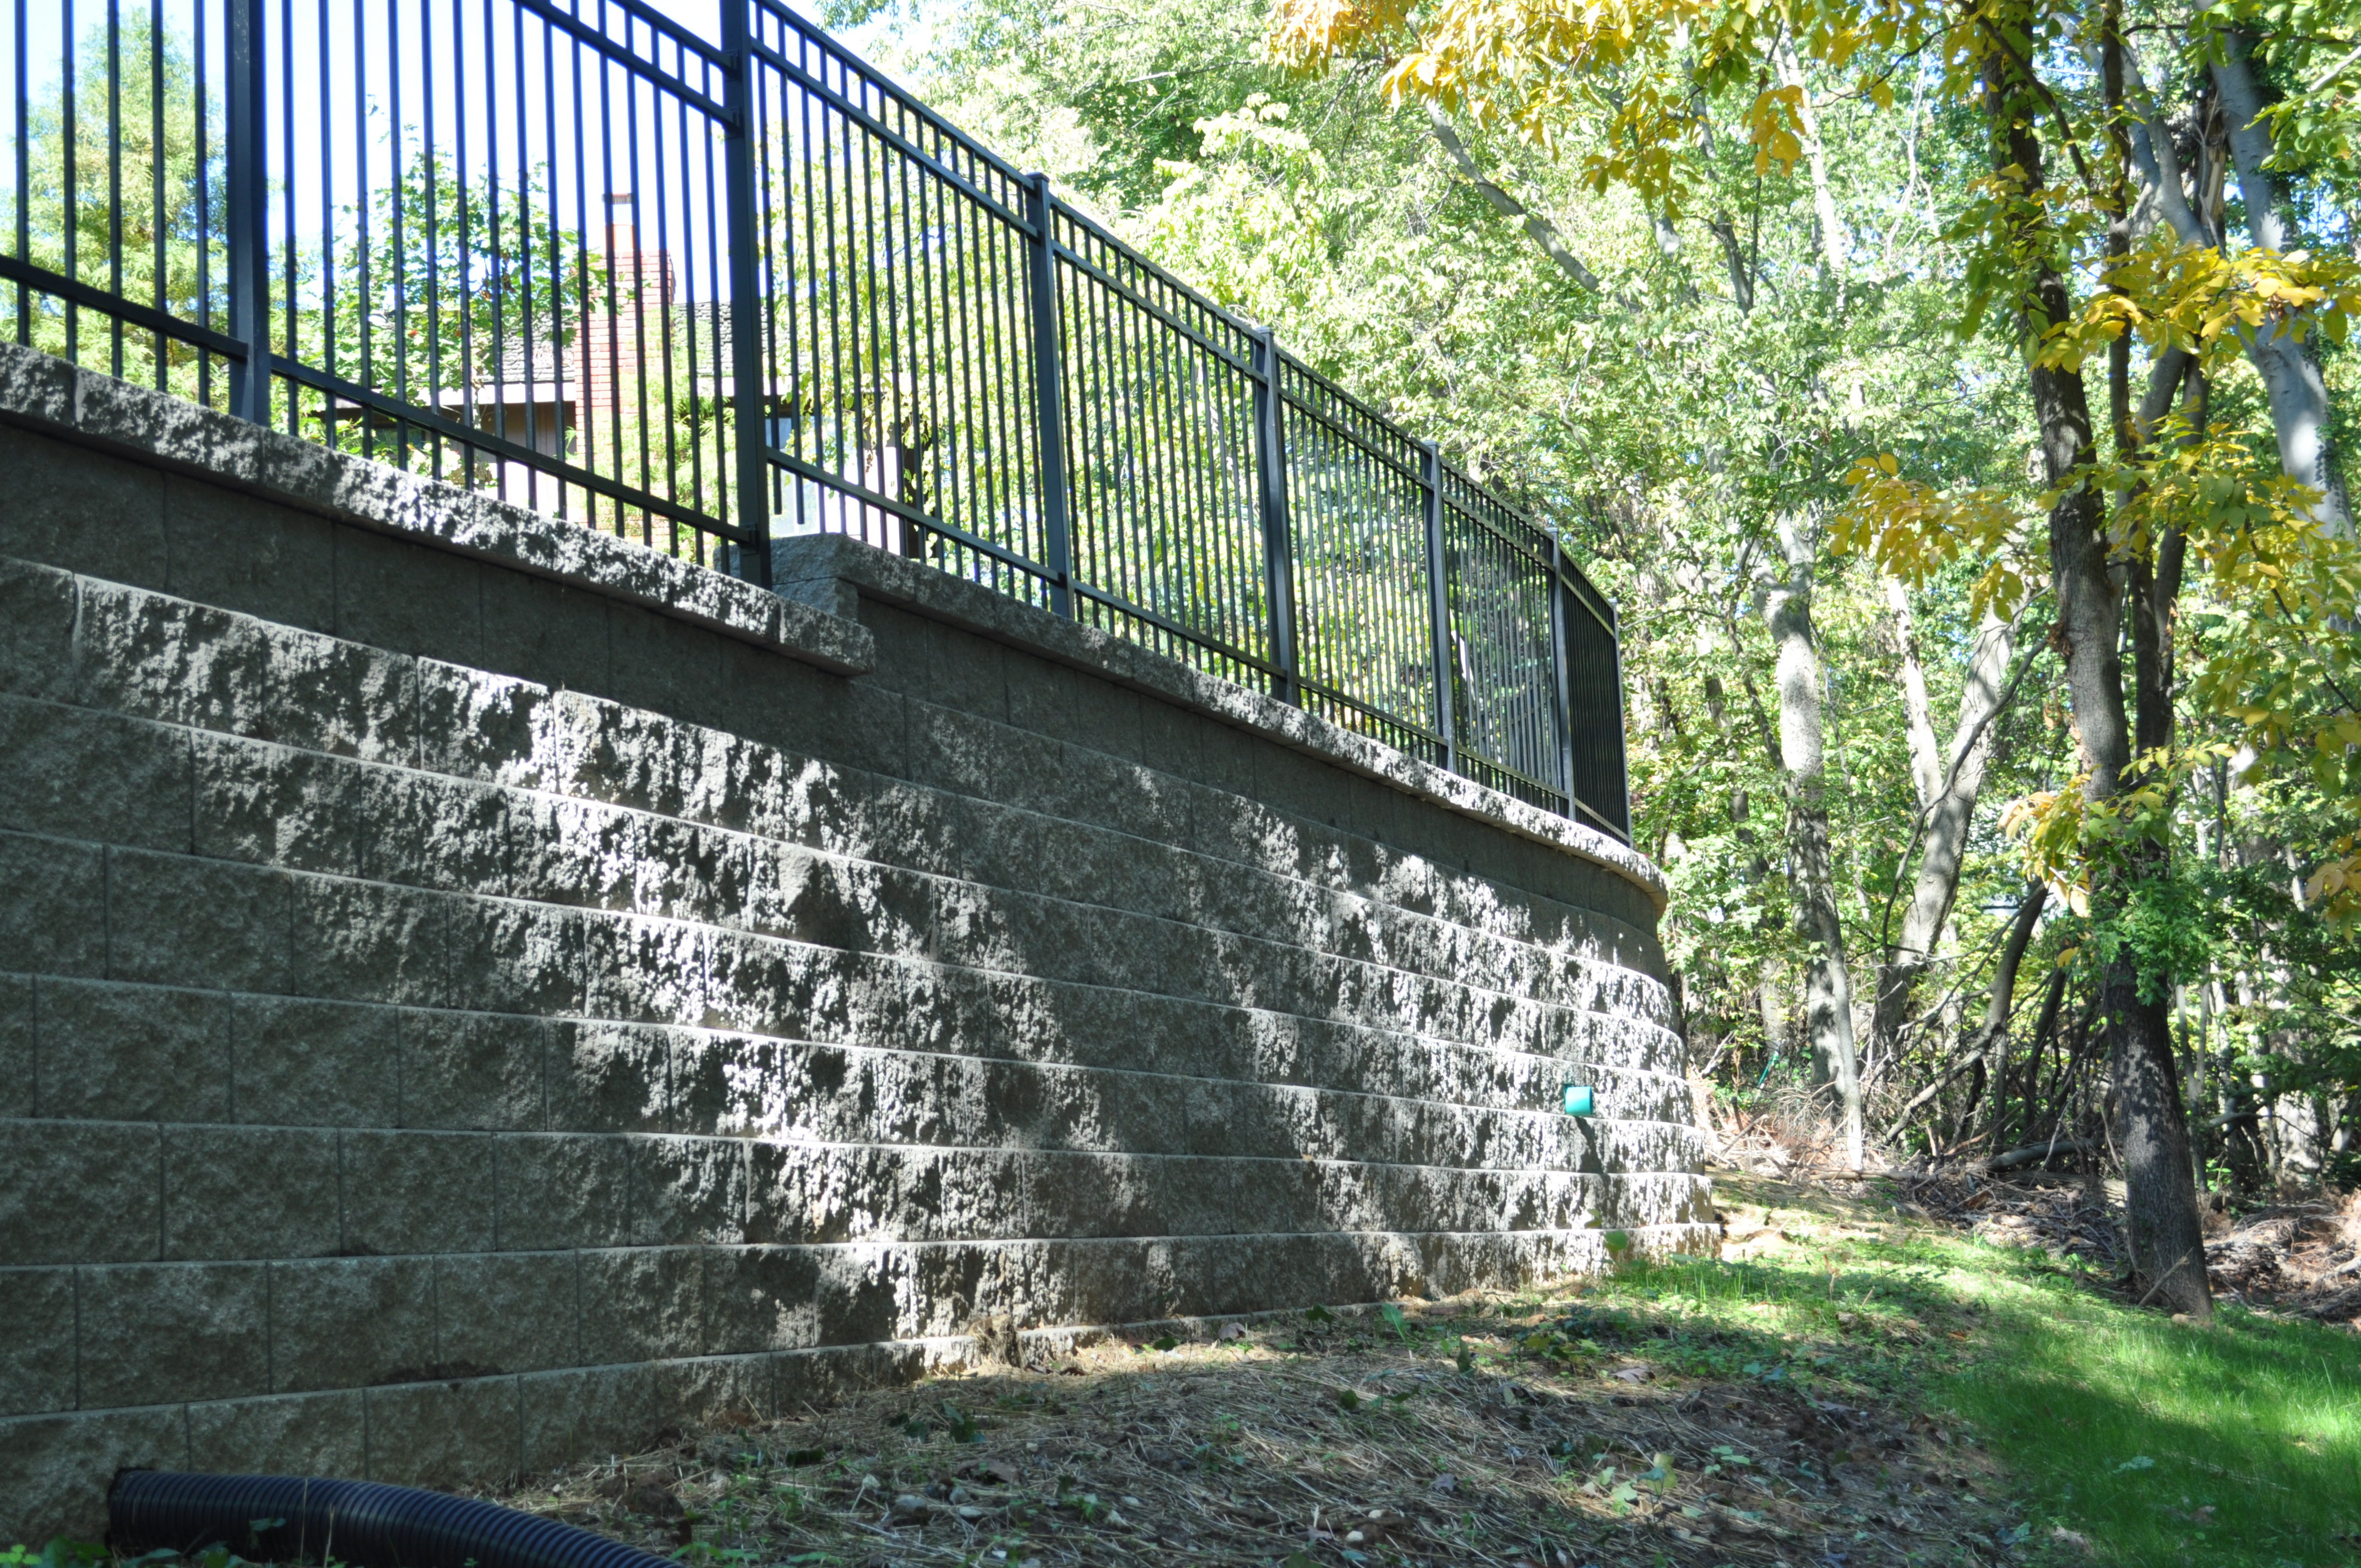 Previous Project of landscapes built by professionals in ST Charles & ST Louis, MO